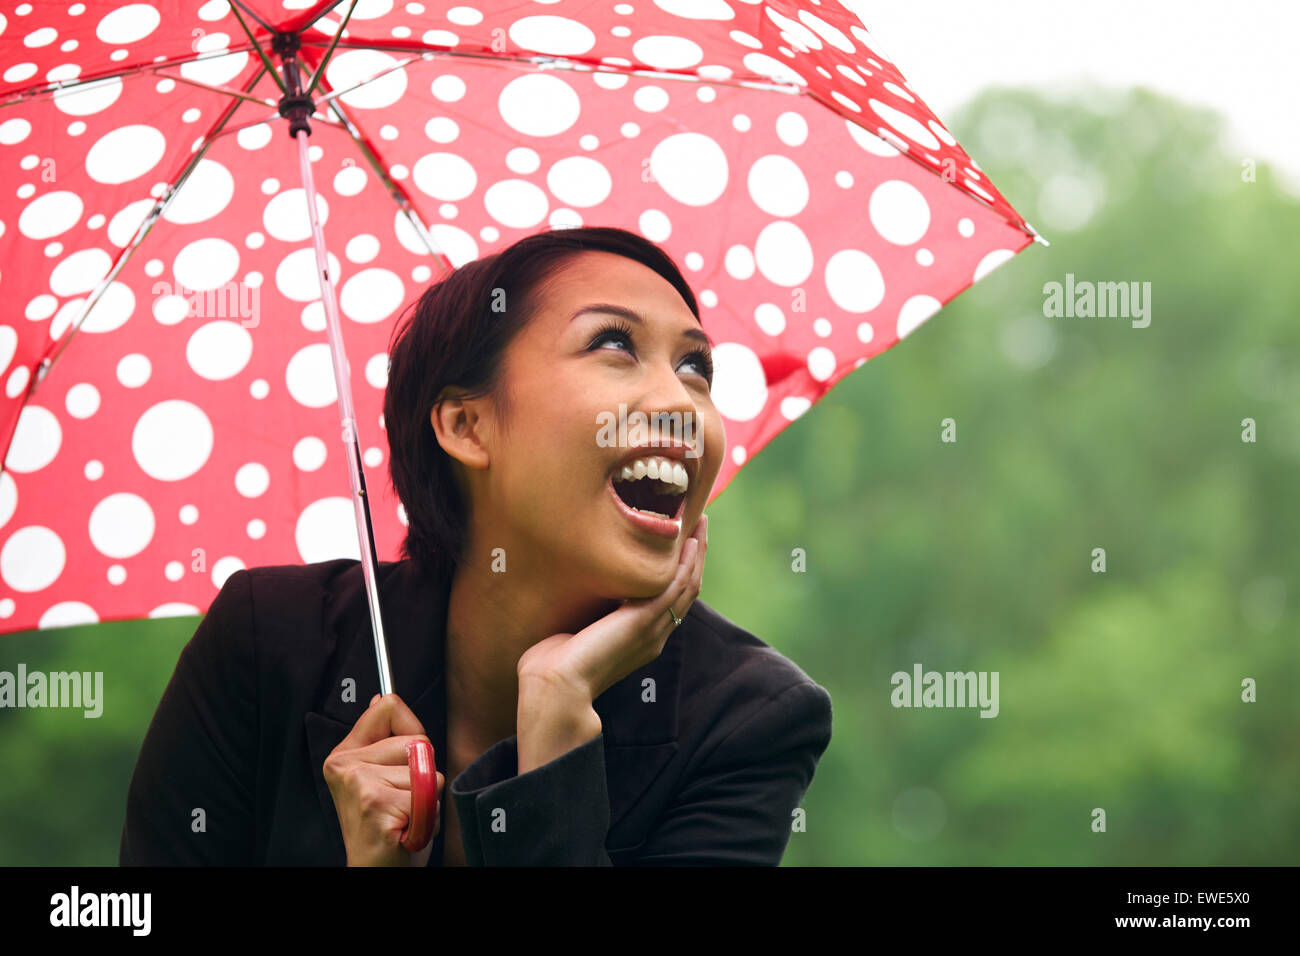 Young Woman Sheltering From Rain Under Umbrella - Stock Image